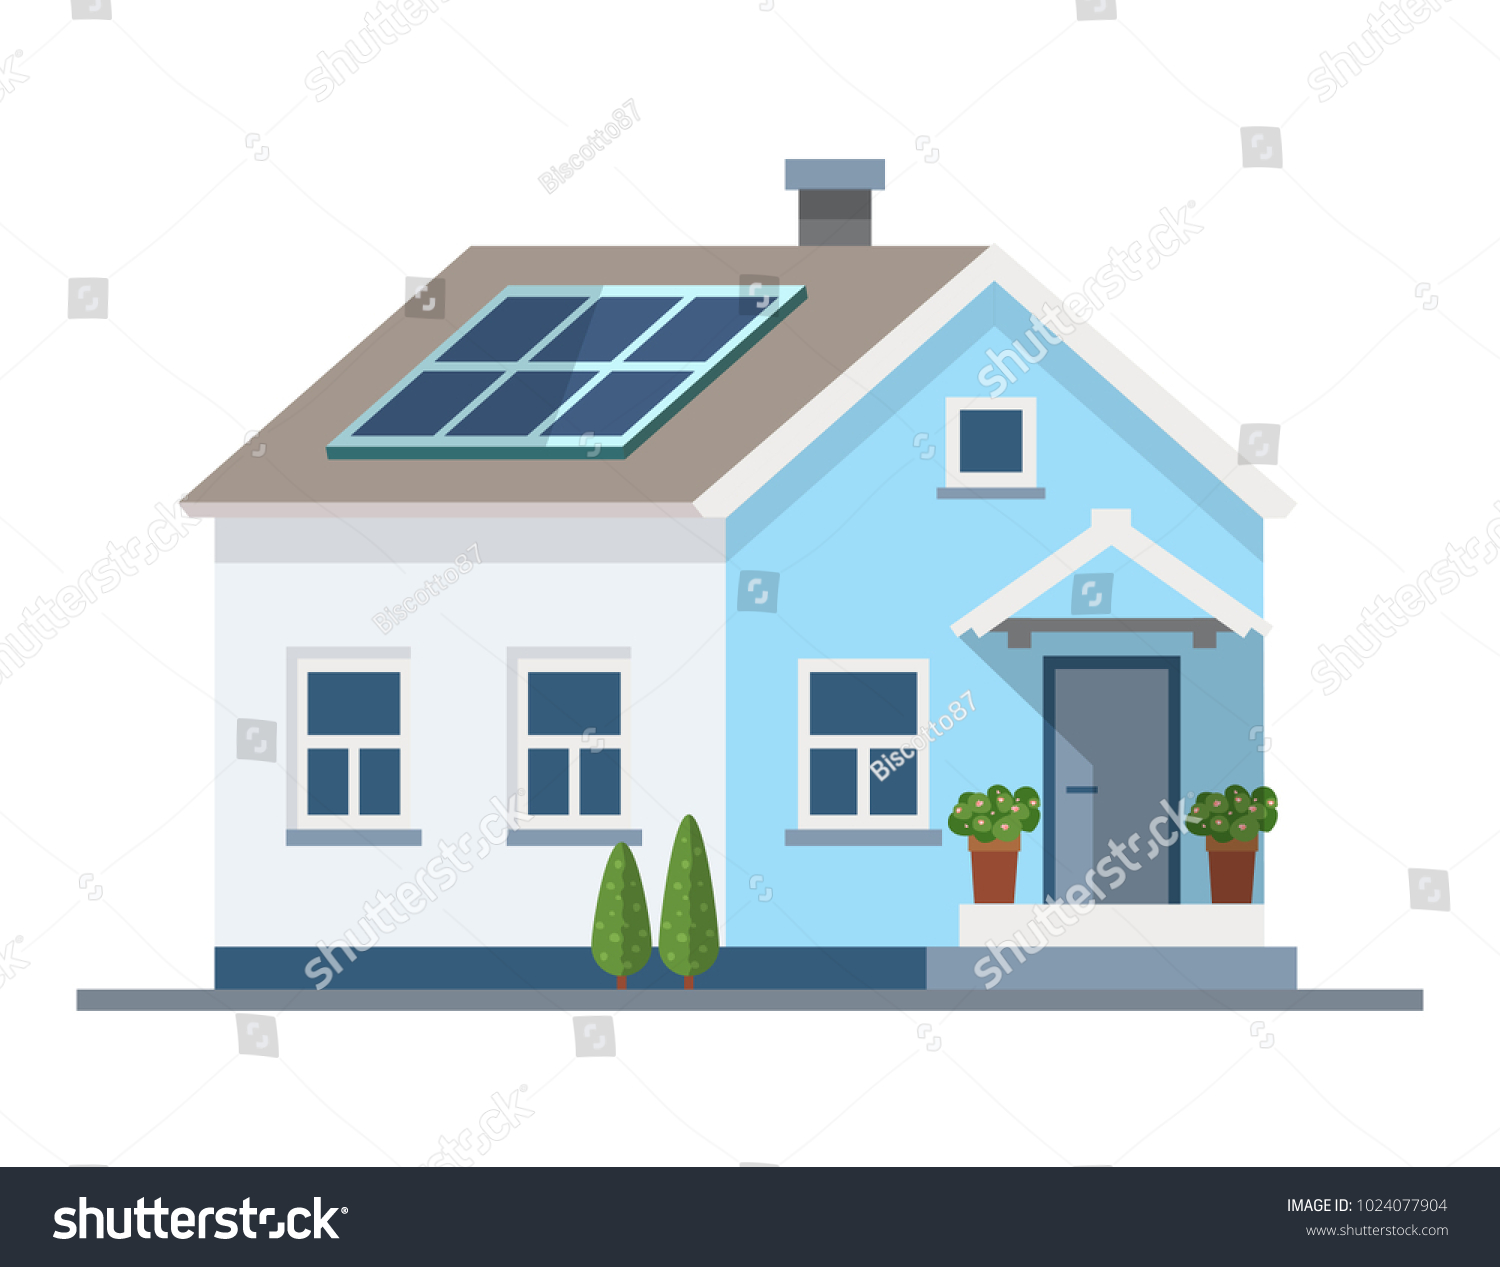 Small house with solar panels on the roof green energy ecology vector illustration in